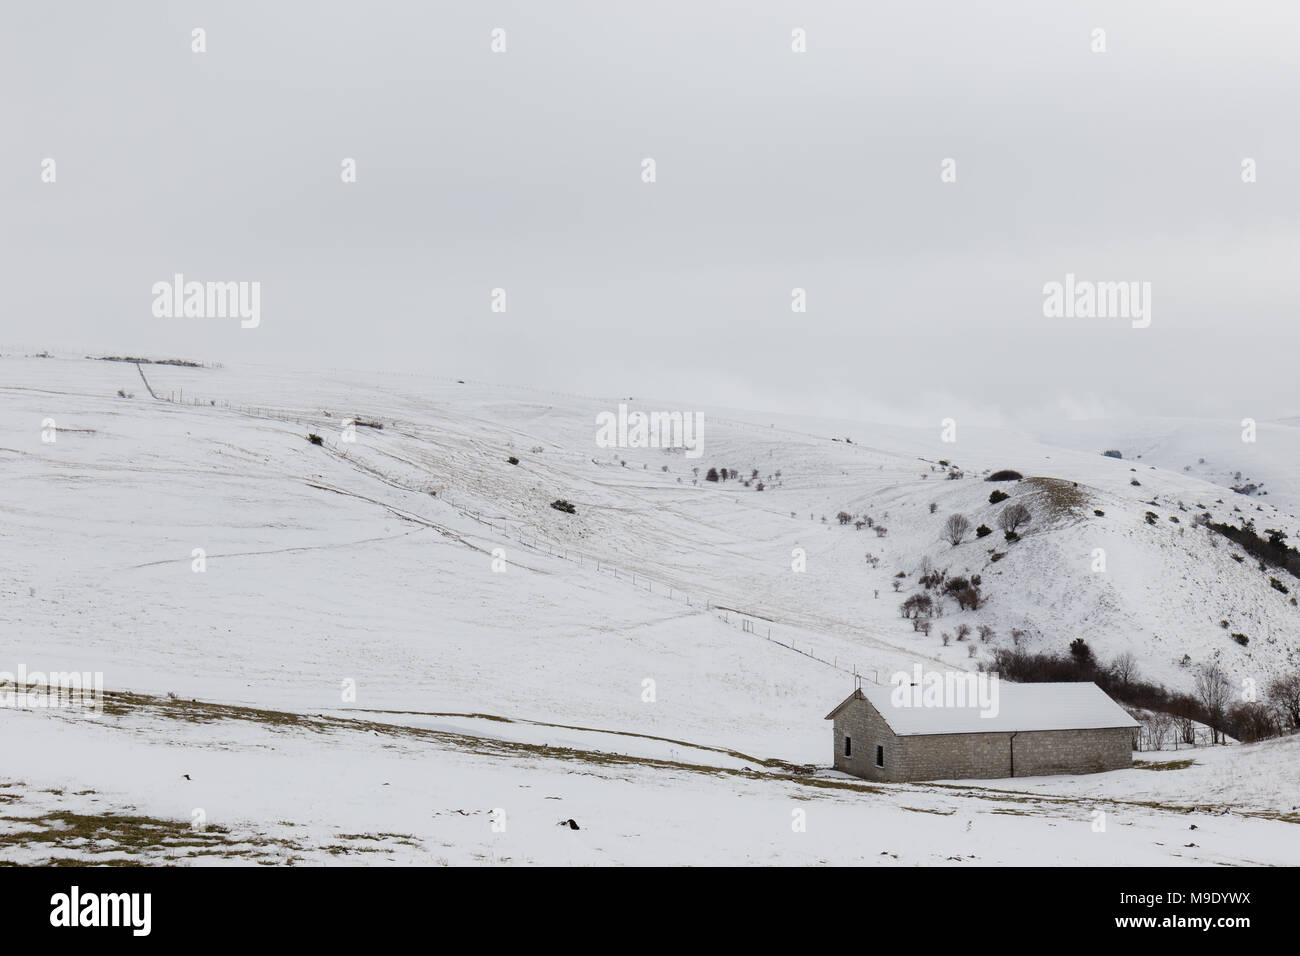 A small mountain retreat covered by snow on Mt. Subasio (Umbria, Italy) during winter season - Stock Image